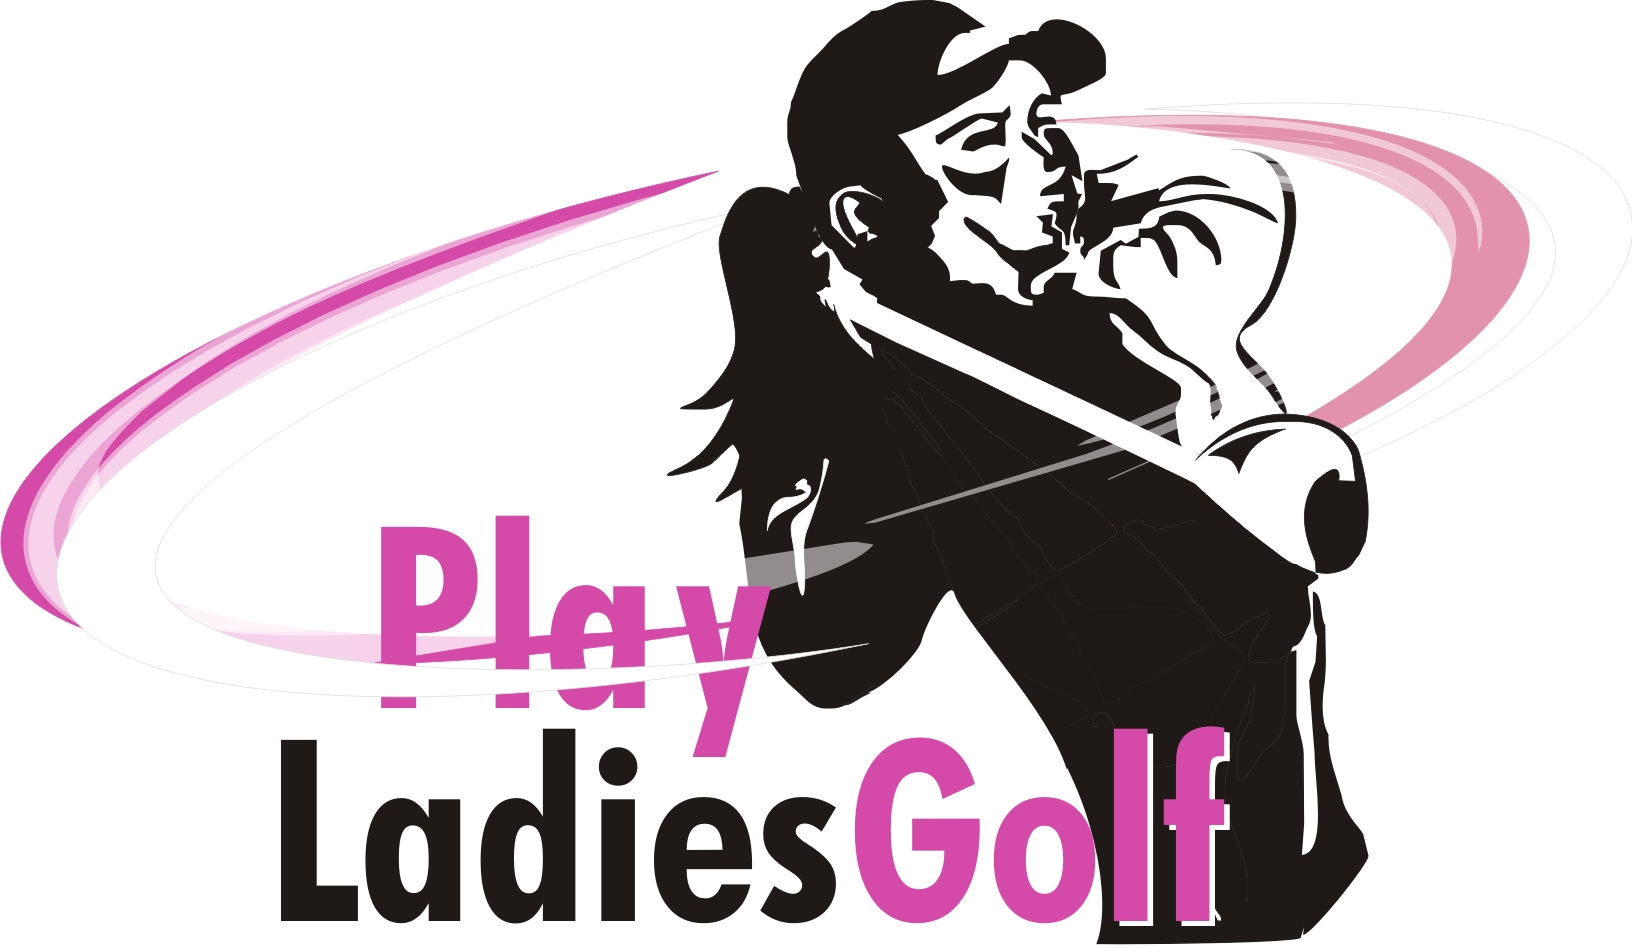 Playladiesgolf 2 Jpg